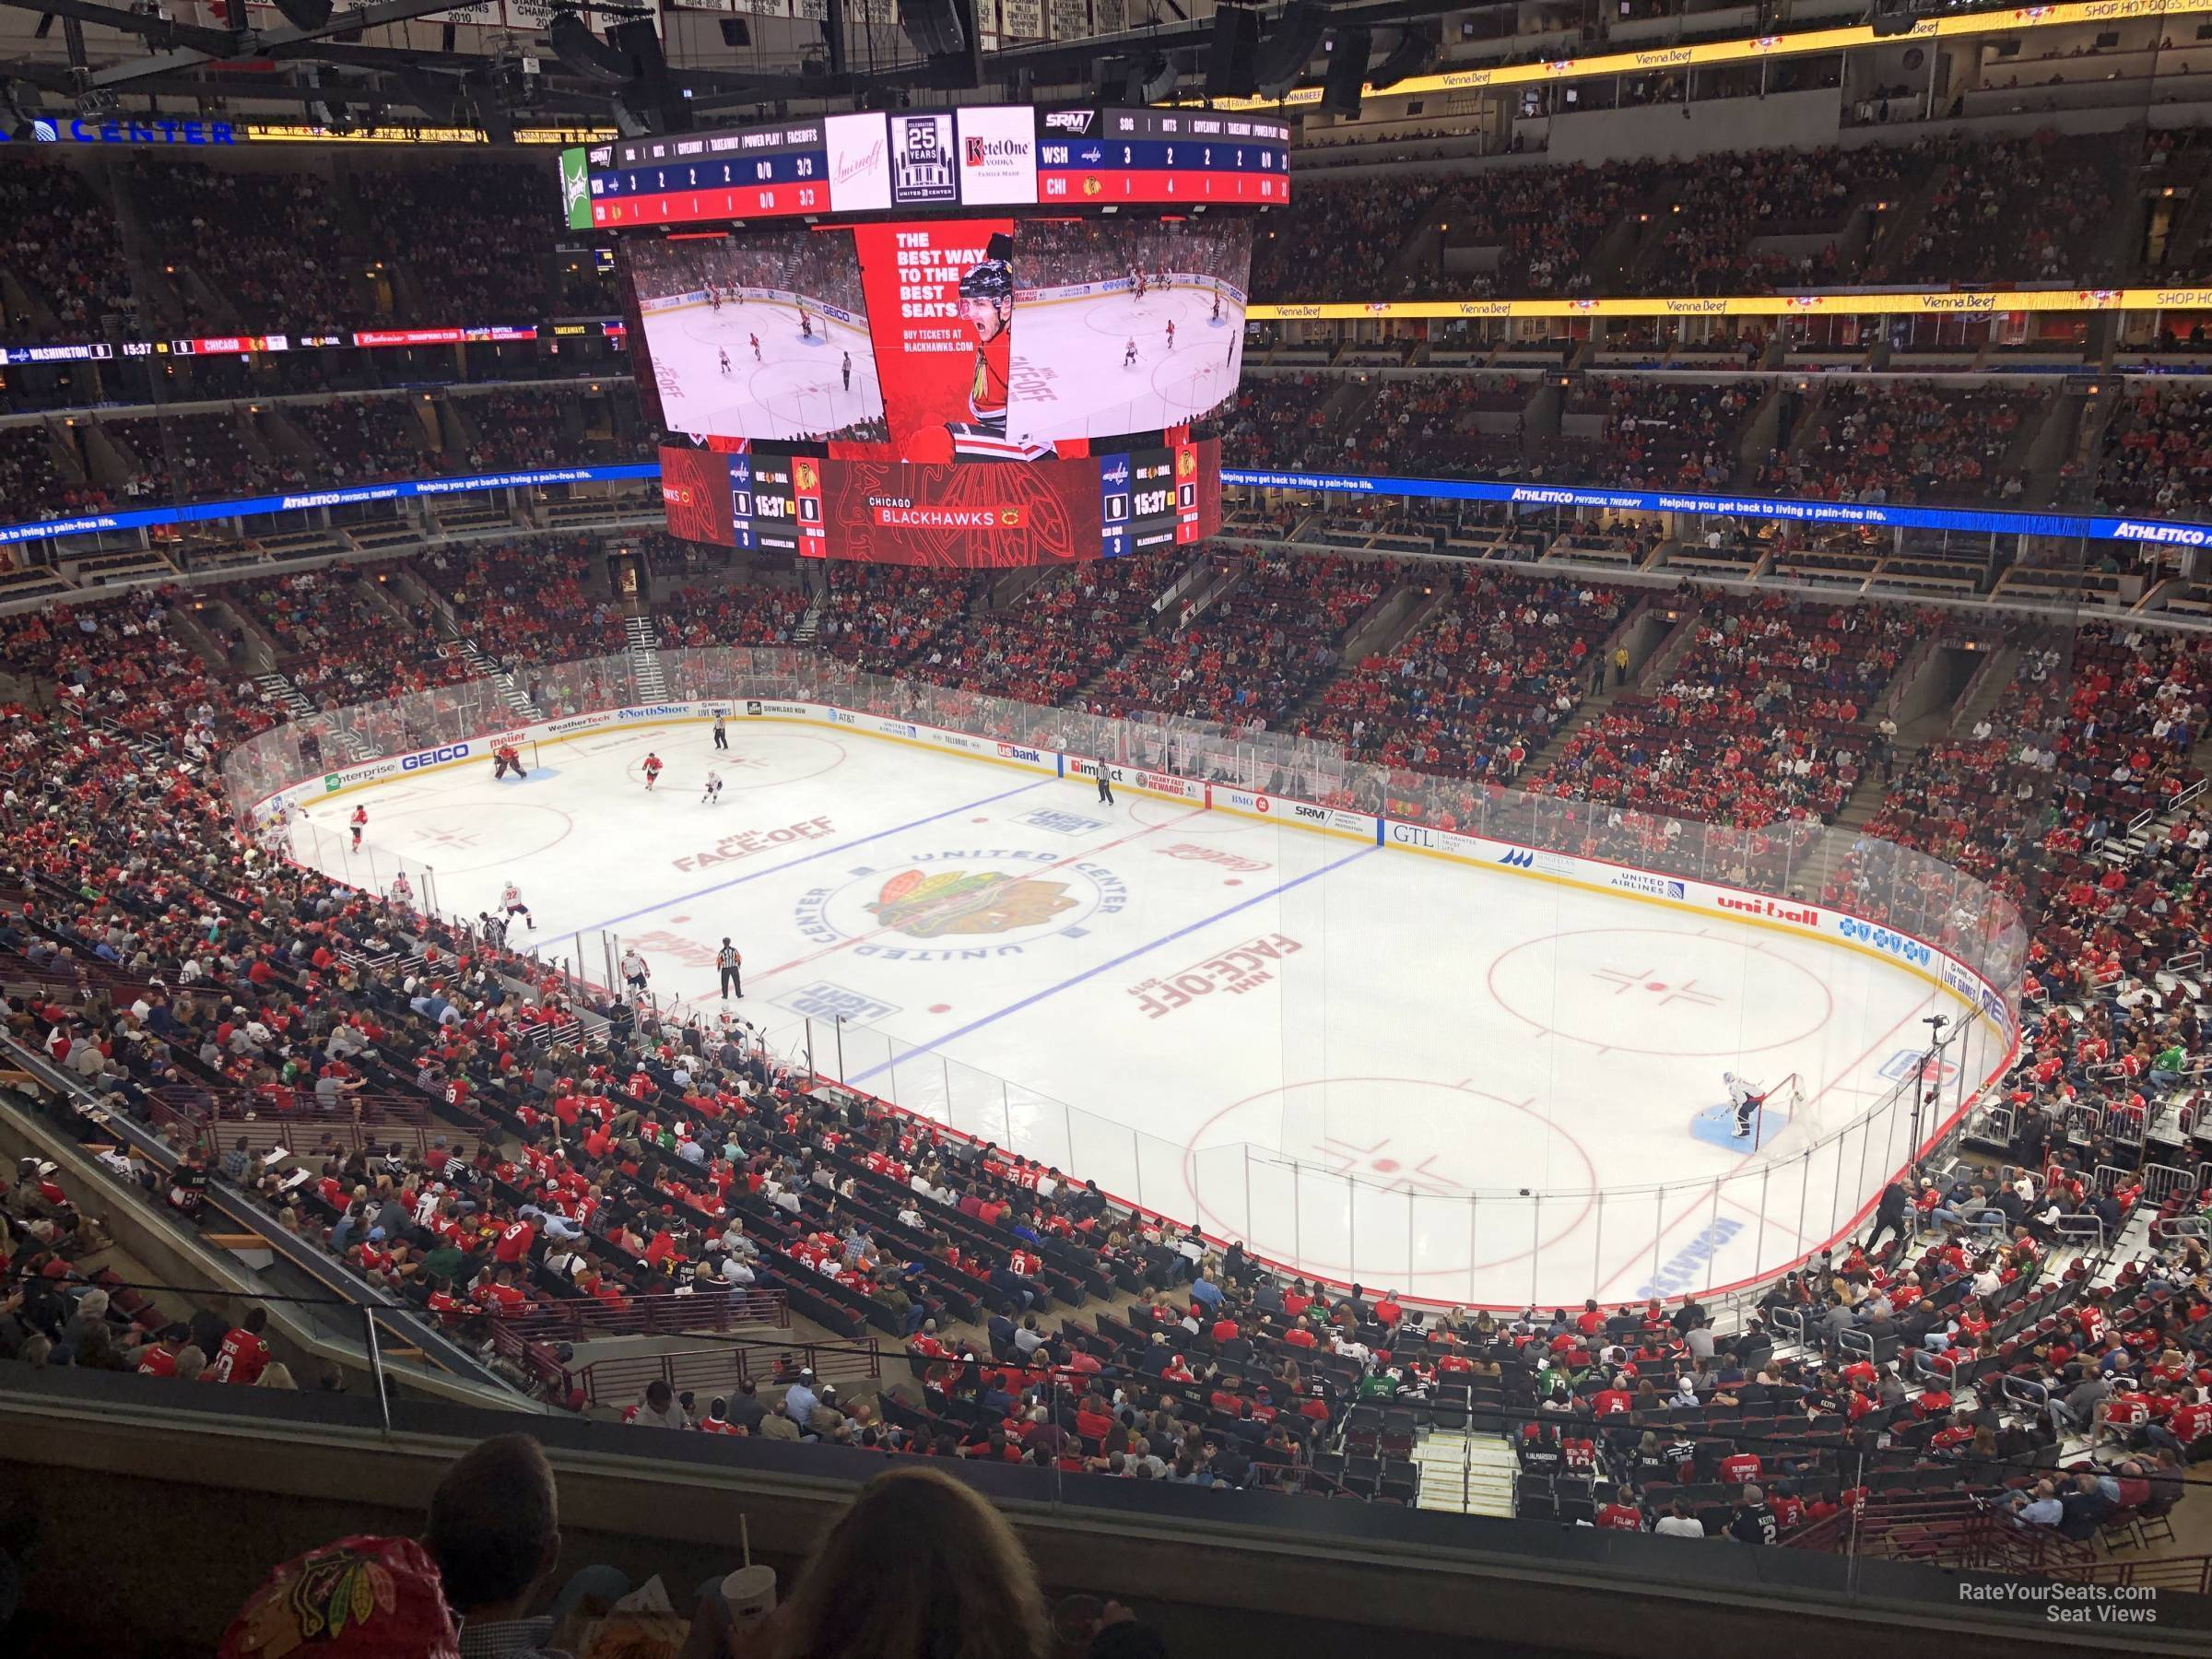 Section 330 seat view